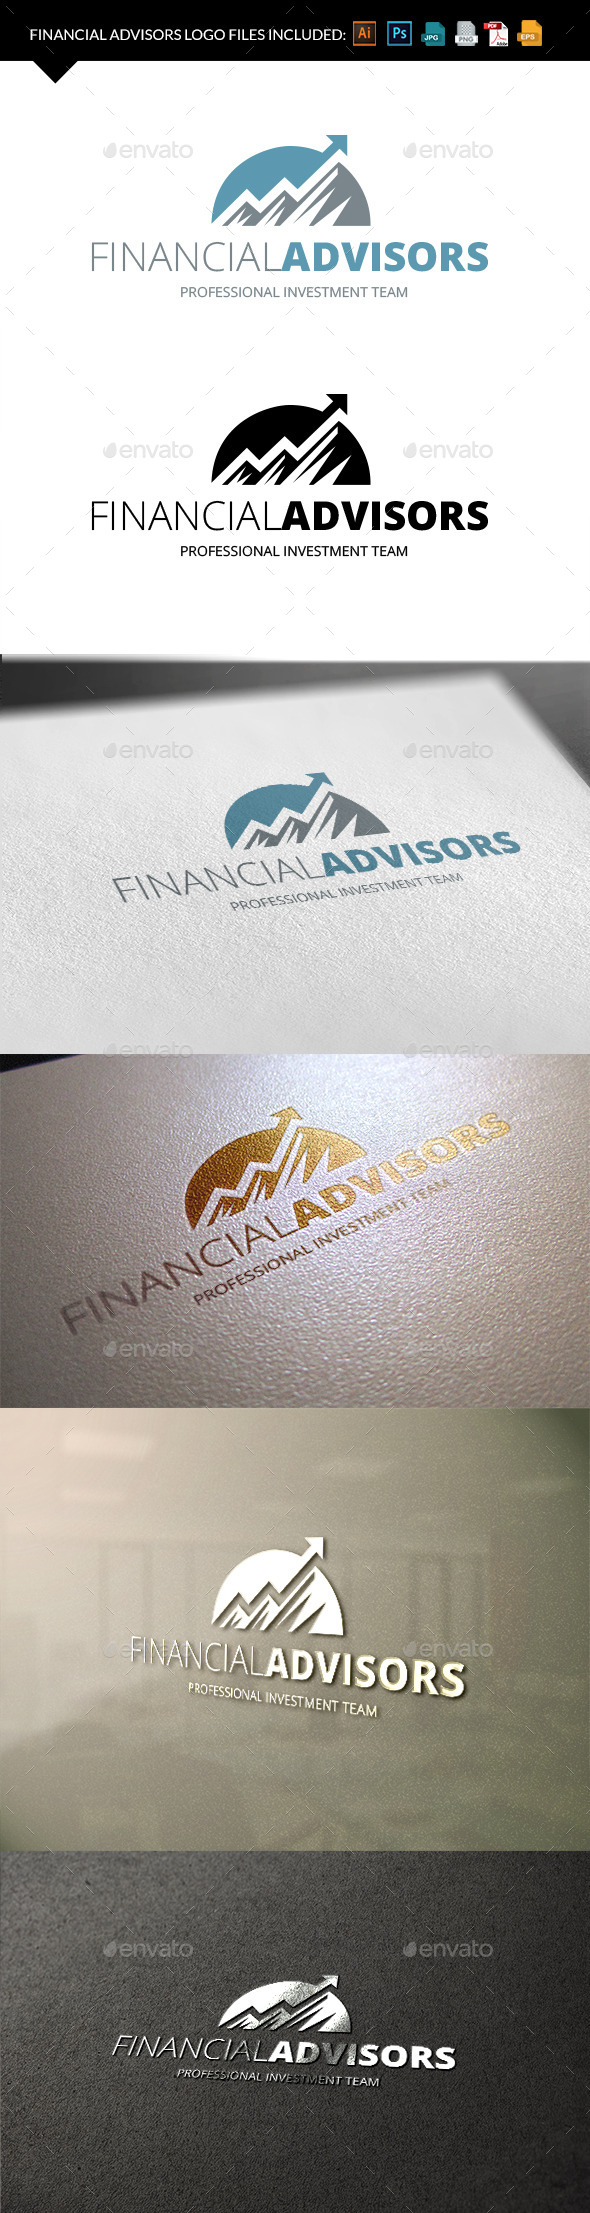 Financial Logo - Vector Abstract